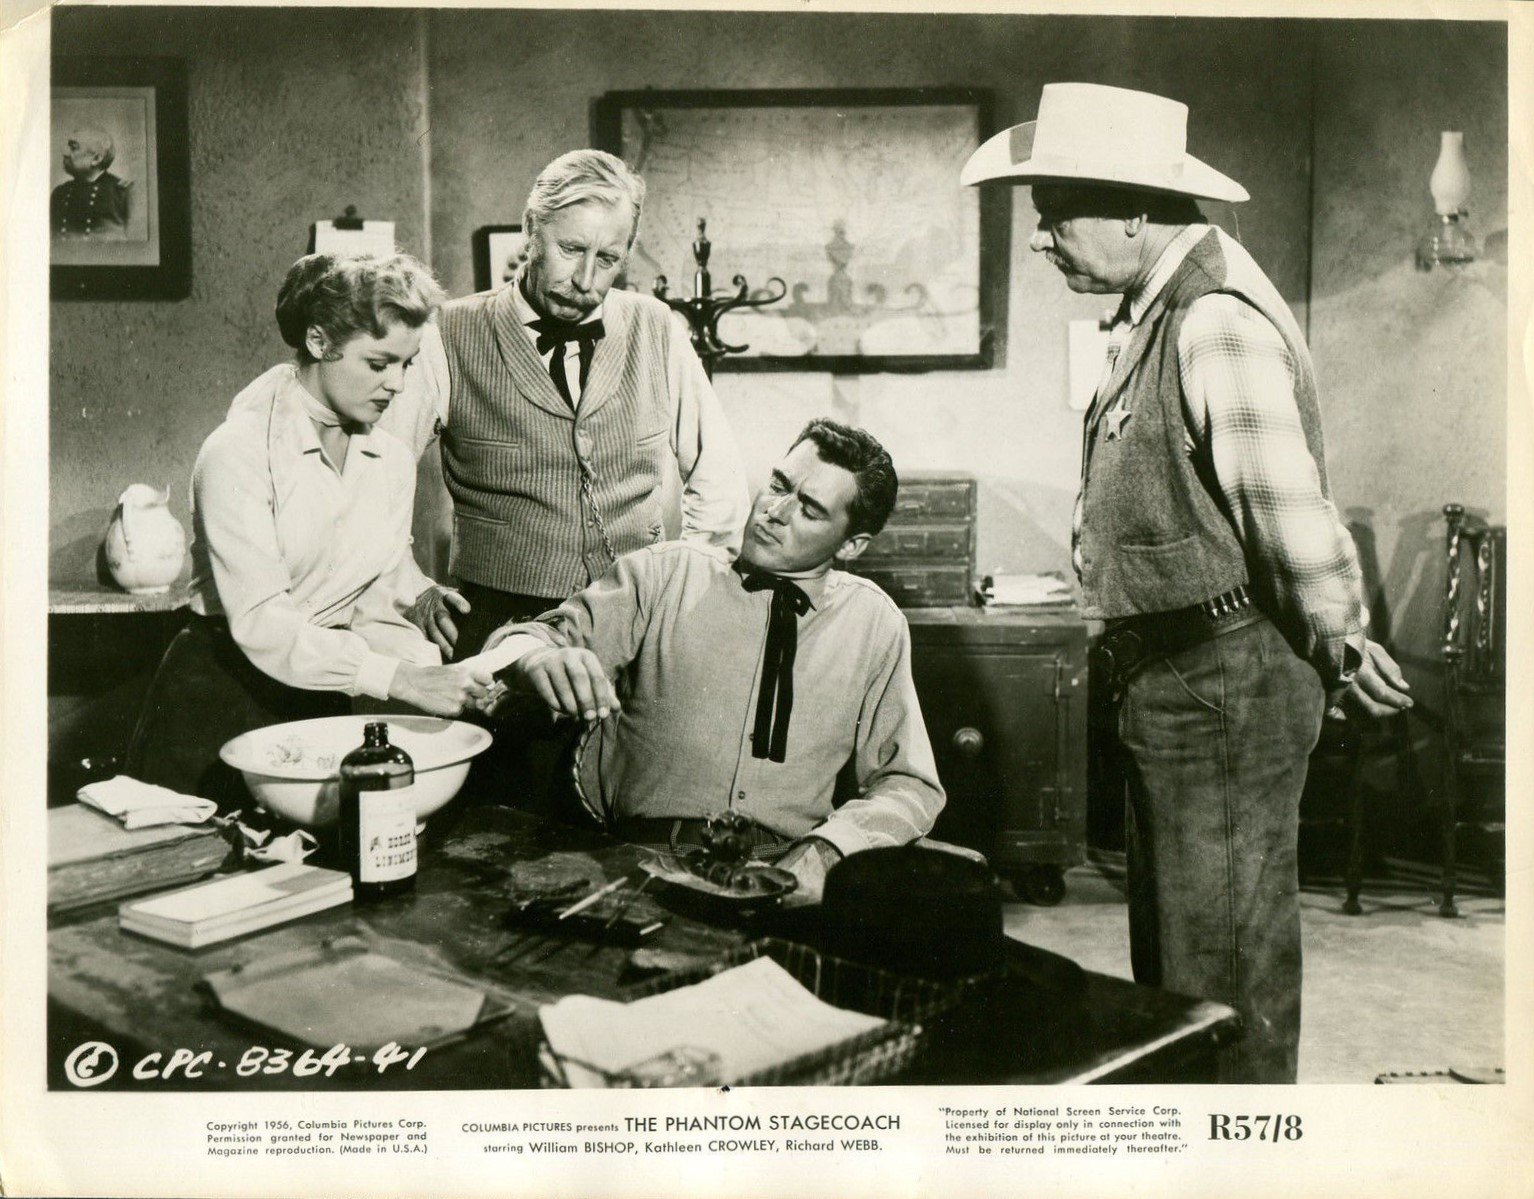 William Bishop, Kathleen Crowley, Frank Ferguson, and Ray Teal in The Phantom Stagecoach (1957)